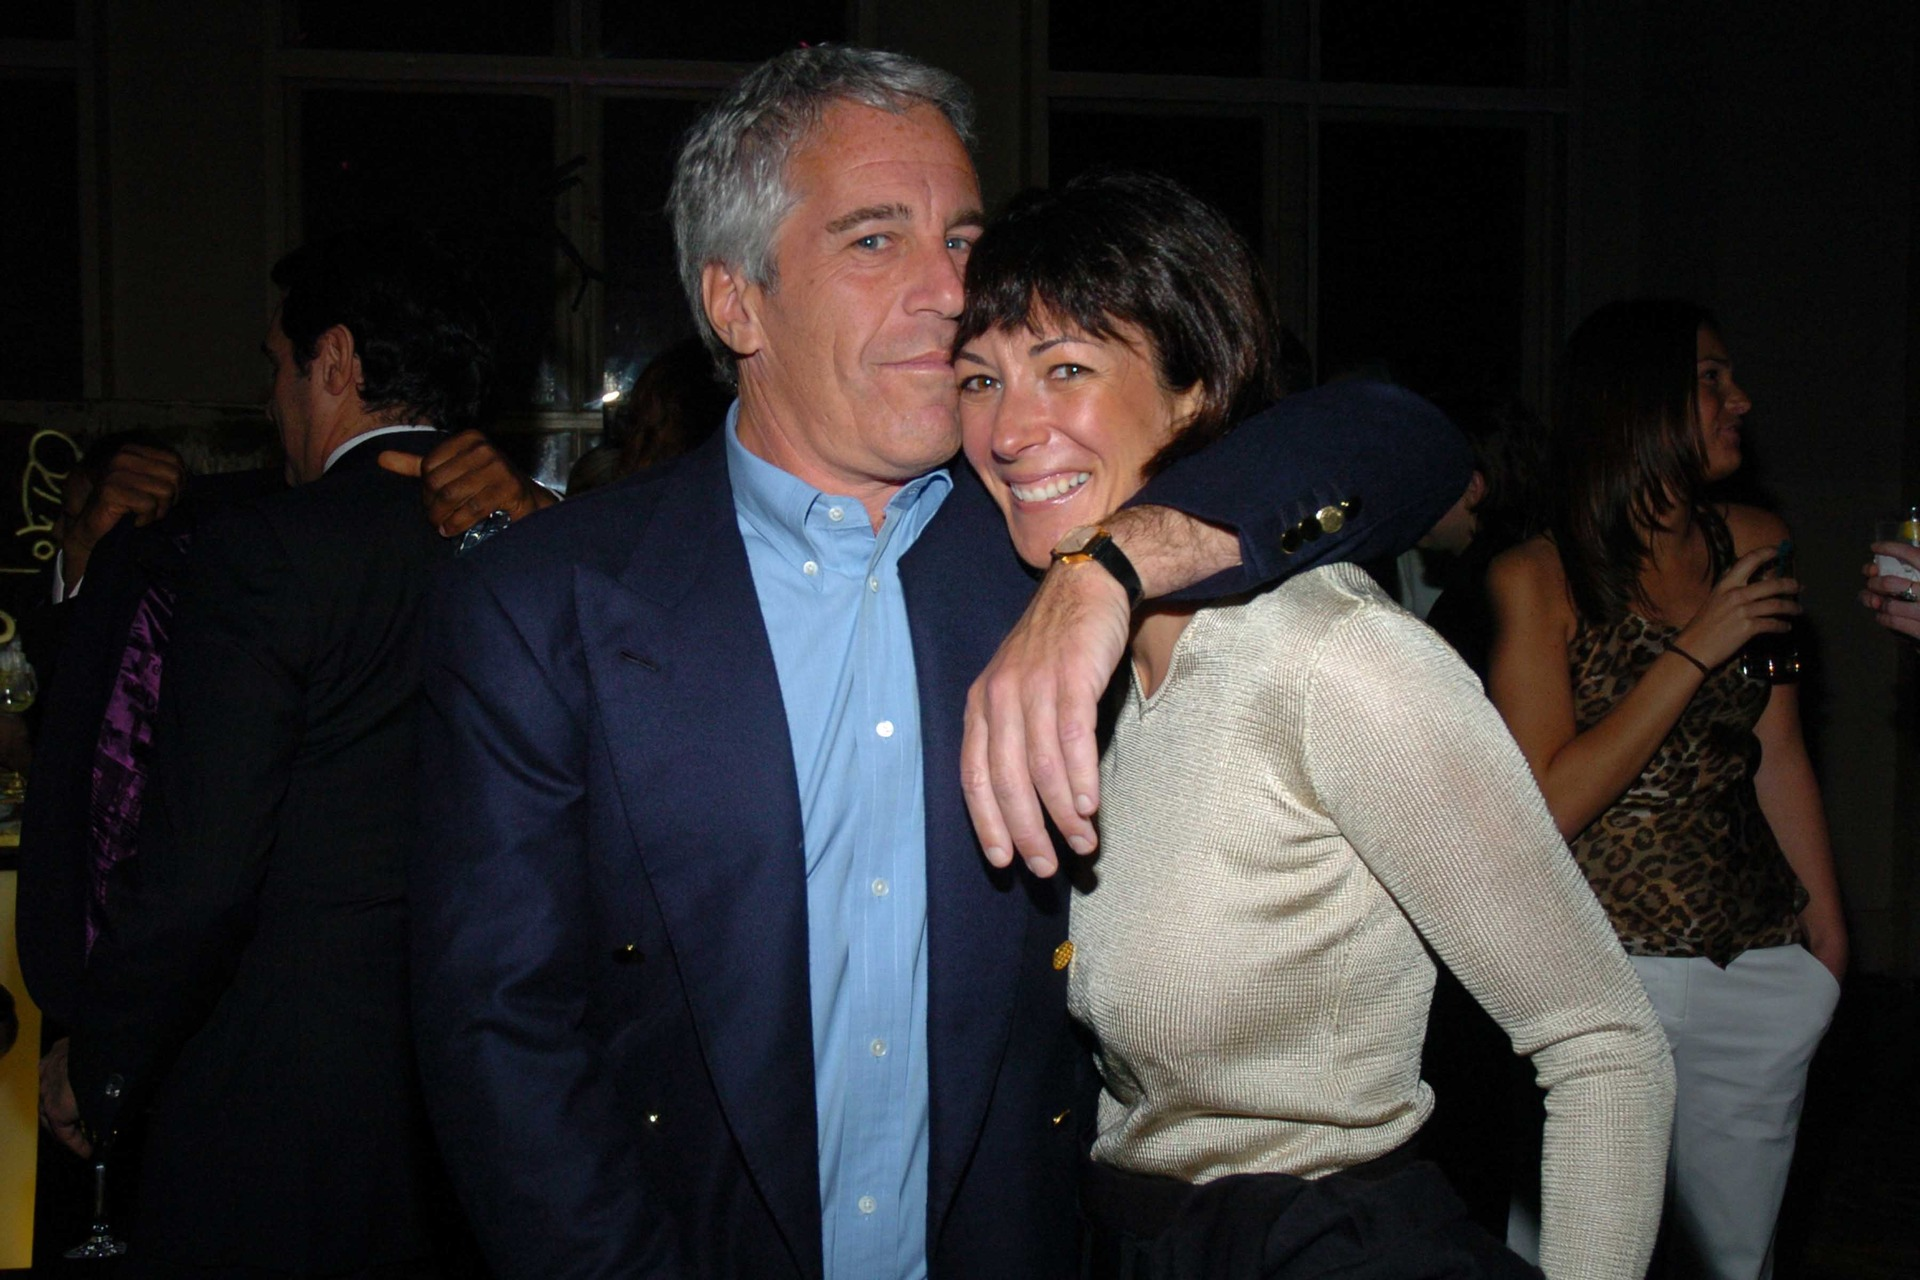 An alleged victim of Jeffrey Epstein is suing his suspected associate, Ghislaine Maxwell